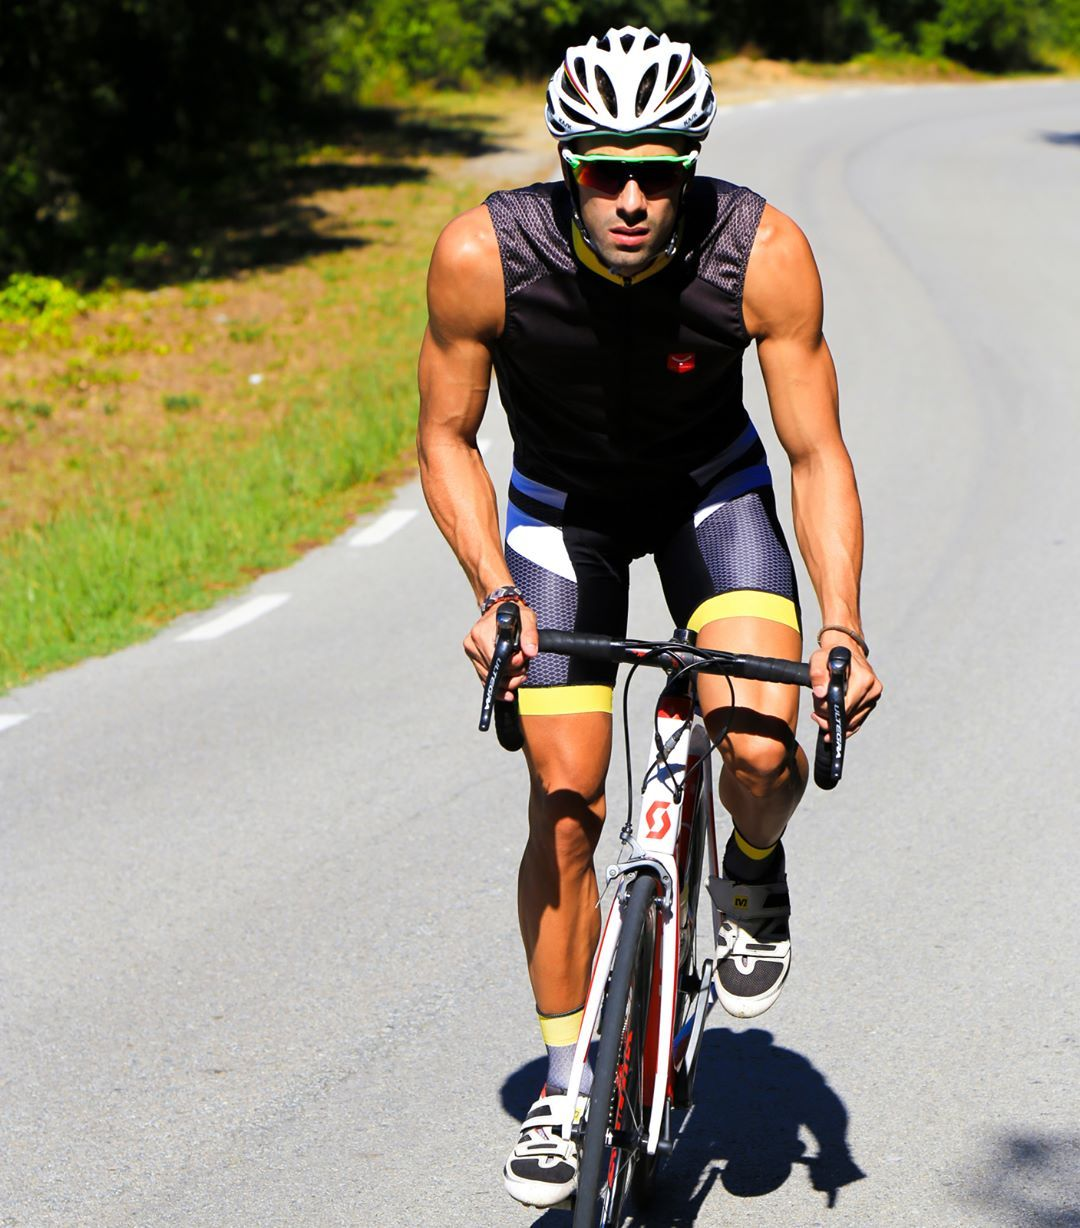 Cyclist wearing vest